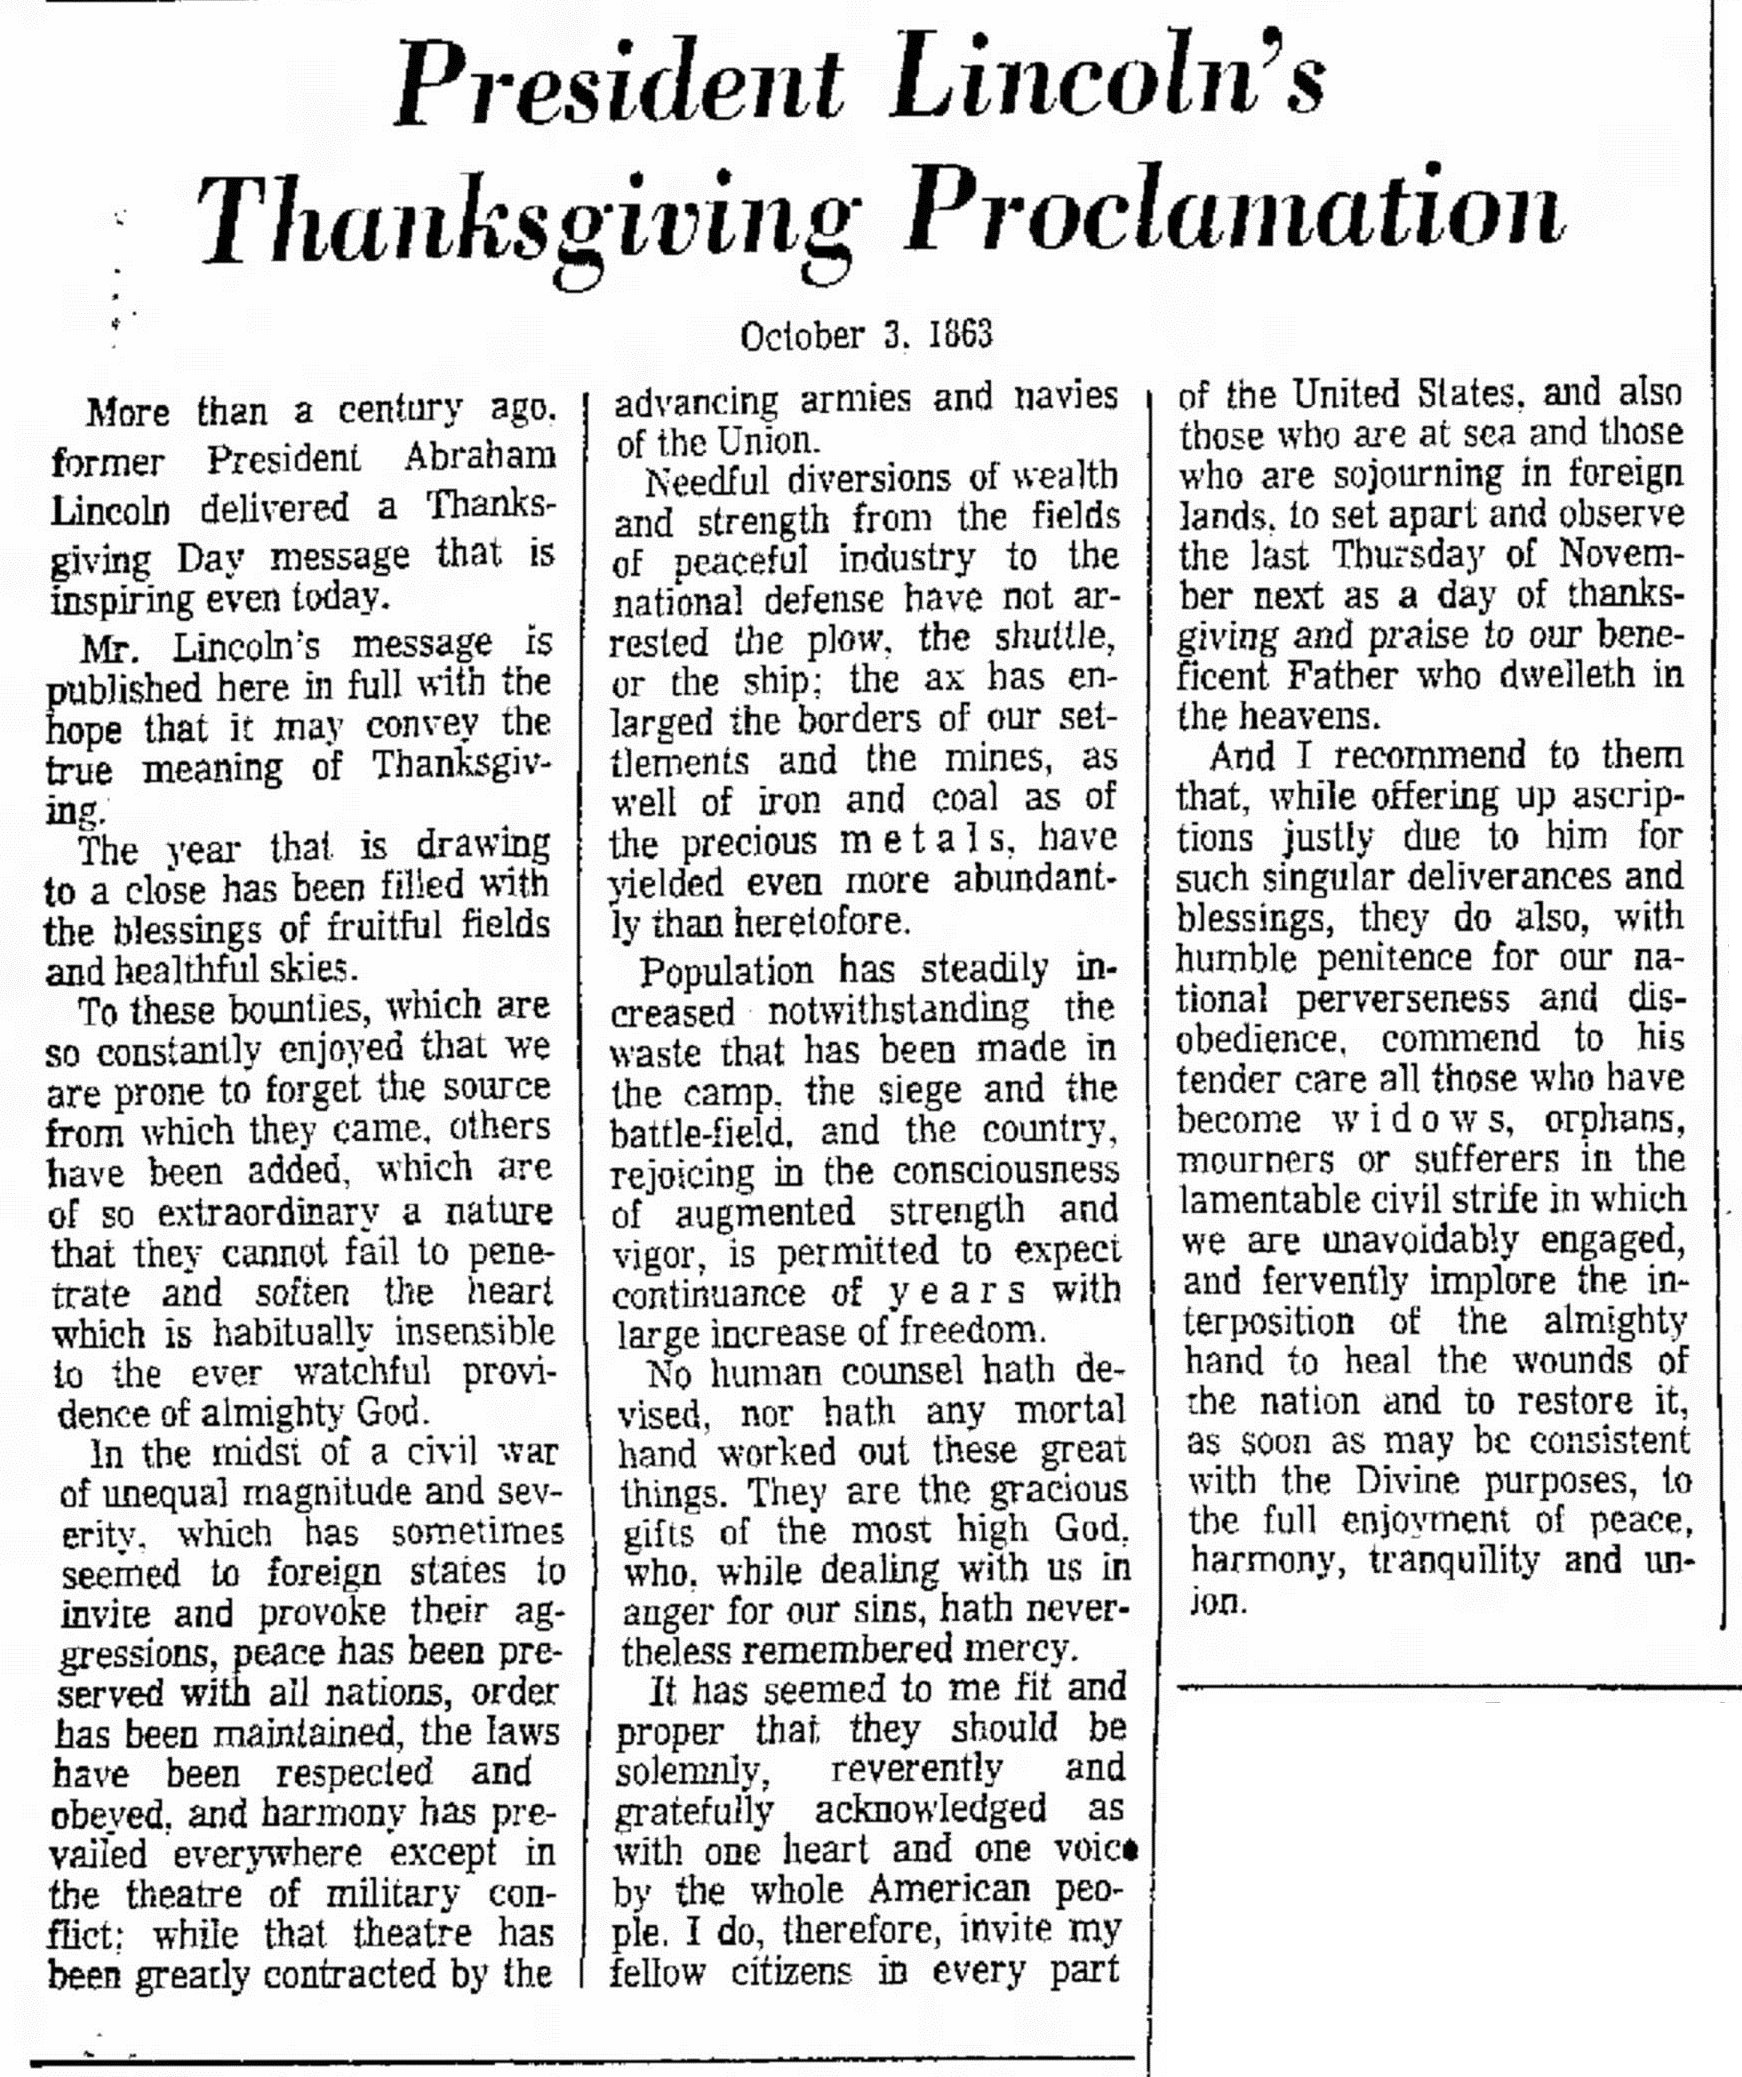 President Lincoln's Thanksgiving Proclamation